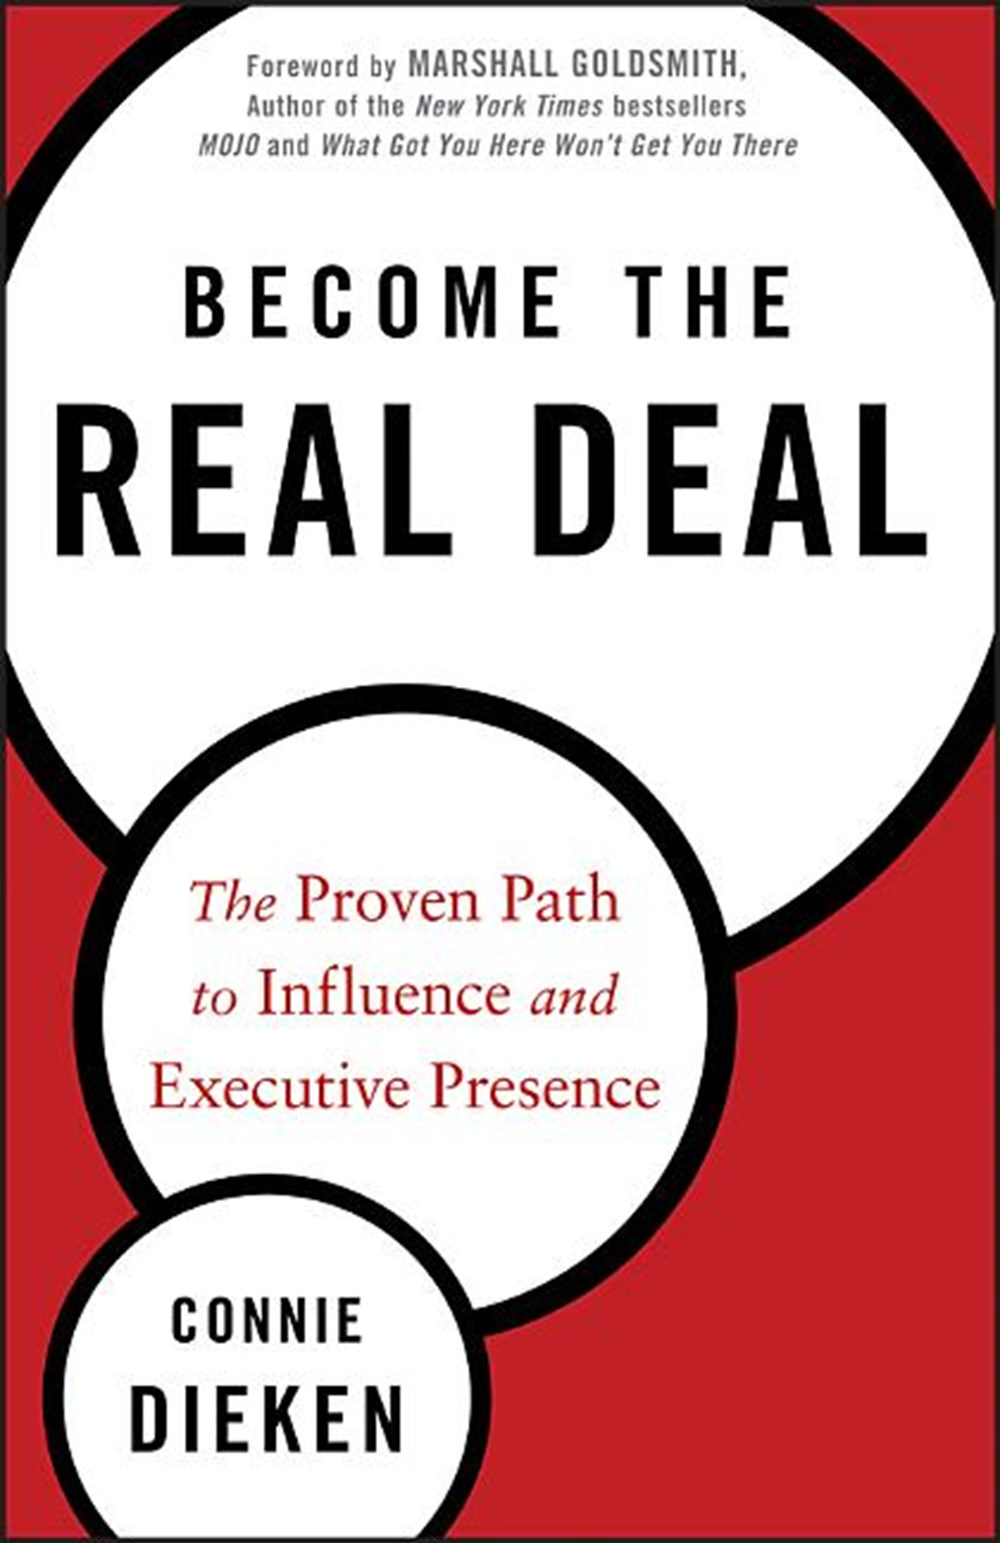 Become the Real Deal The Proven Path to Influence and Executive Presence